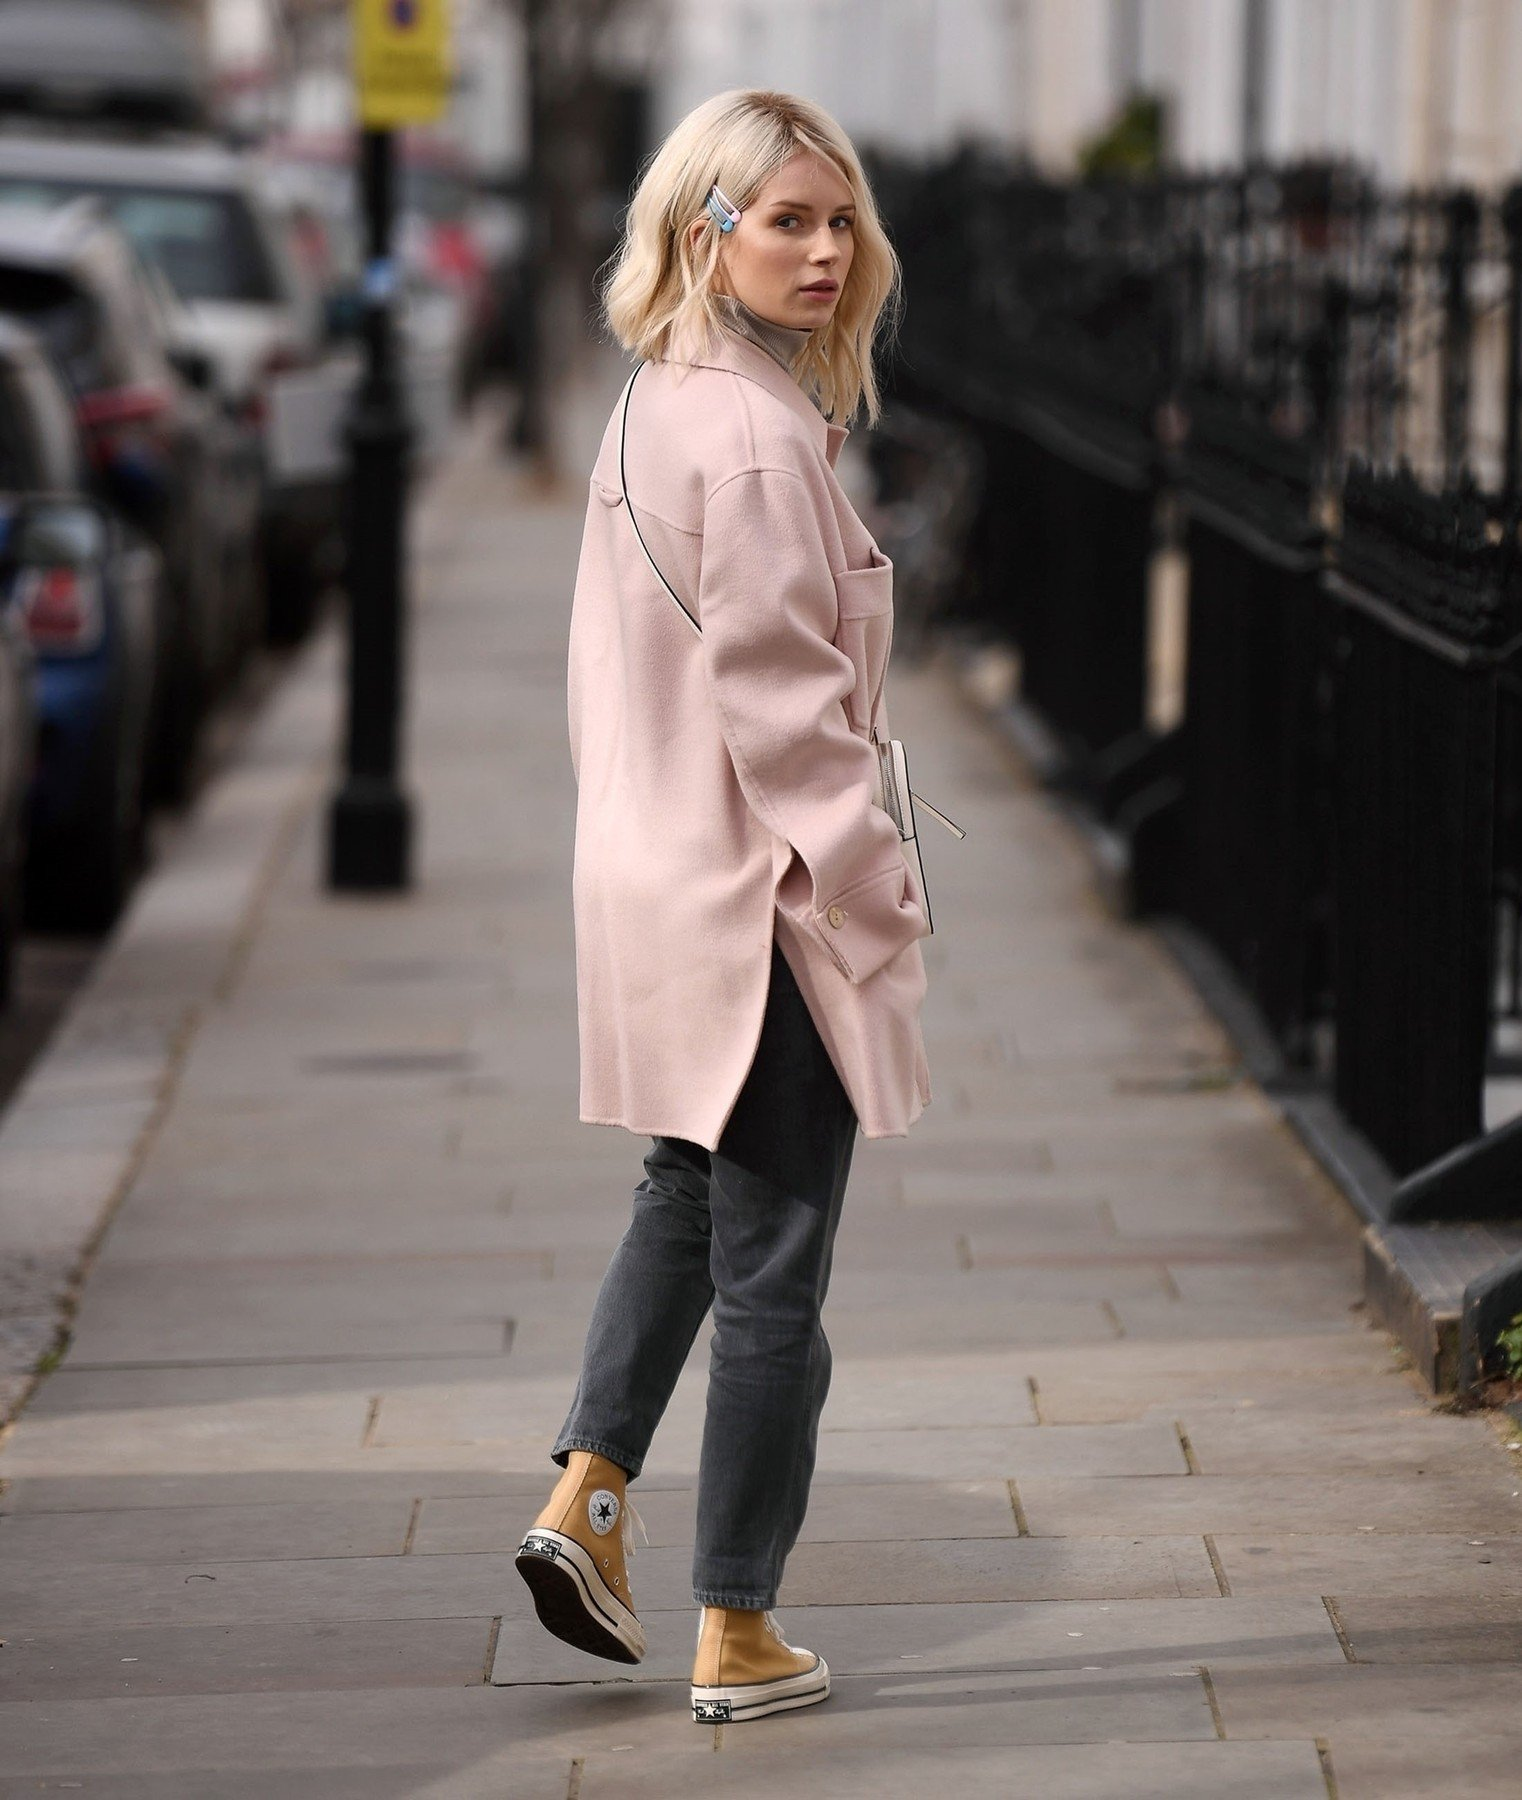 BGUK_1508003 - London, UNITED KINGDOM  - *EXCLUSIVE*  - Kate Moss model sister Lottie Moss shows off new cropped hairstyle as she's pictured out shopping on Kings Road in London. The British Model looked casual as she wore a Pink coat with Grey jeans and mustard Converse trainers!  Pictured: Lottie Moss  BACKGRID UK 5 MARCH 2019, Image: 417408114, License: Rights-managed, Restrictions: , Model Release: no, Credit line: Profimedia, Backgrid UK